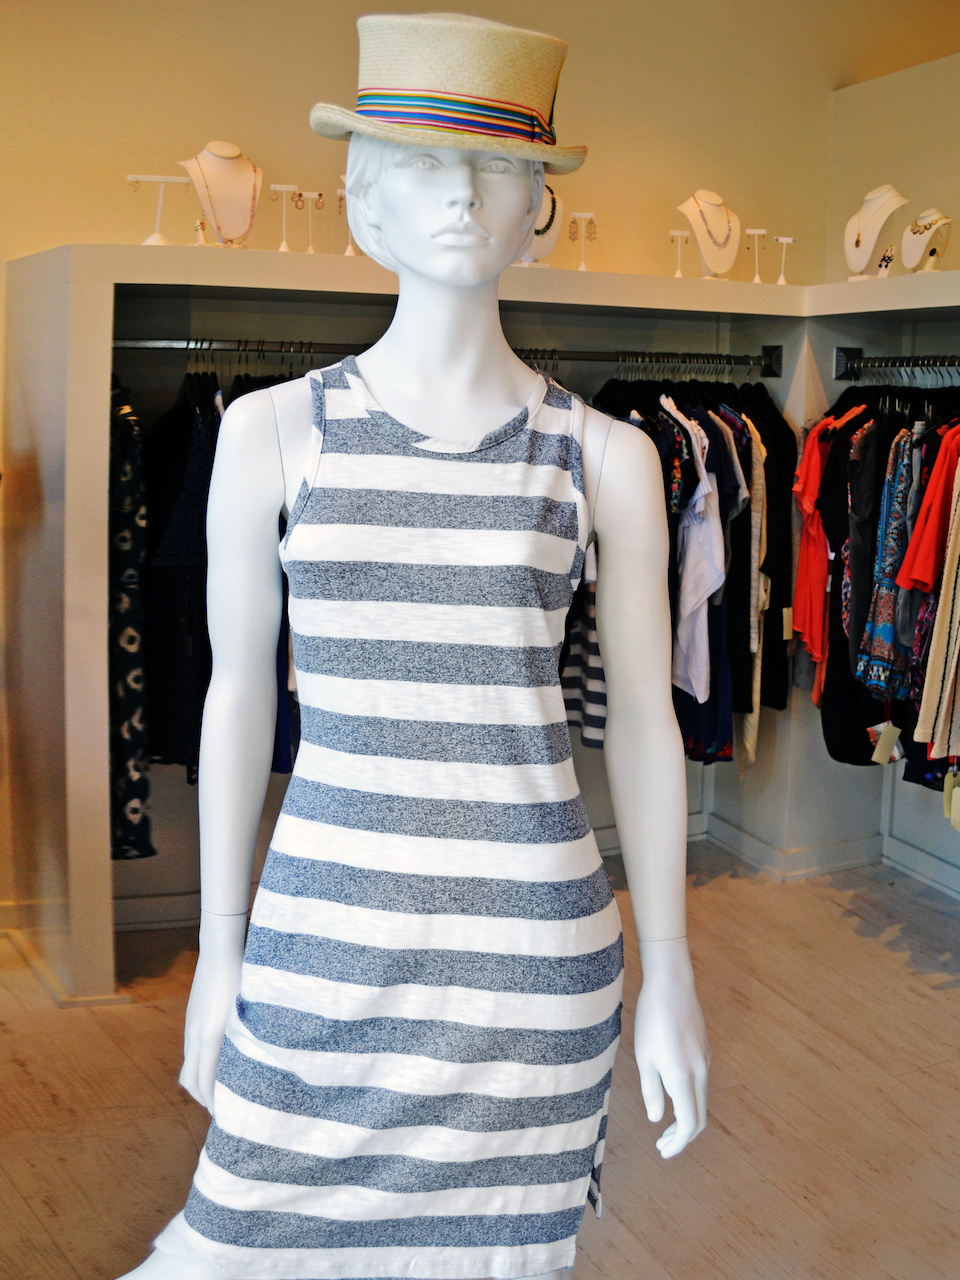 Easy breezy cotton striped tank dress for Fourth of July